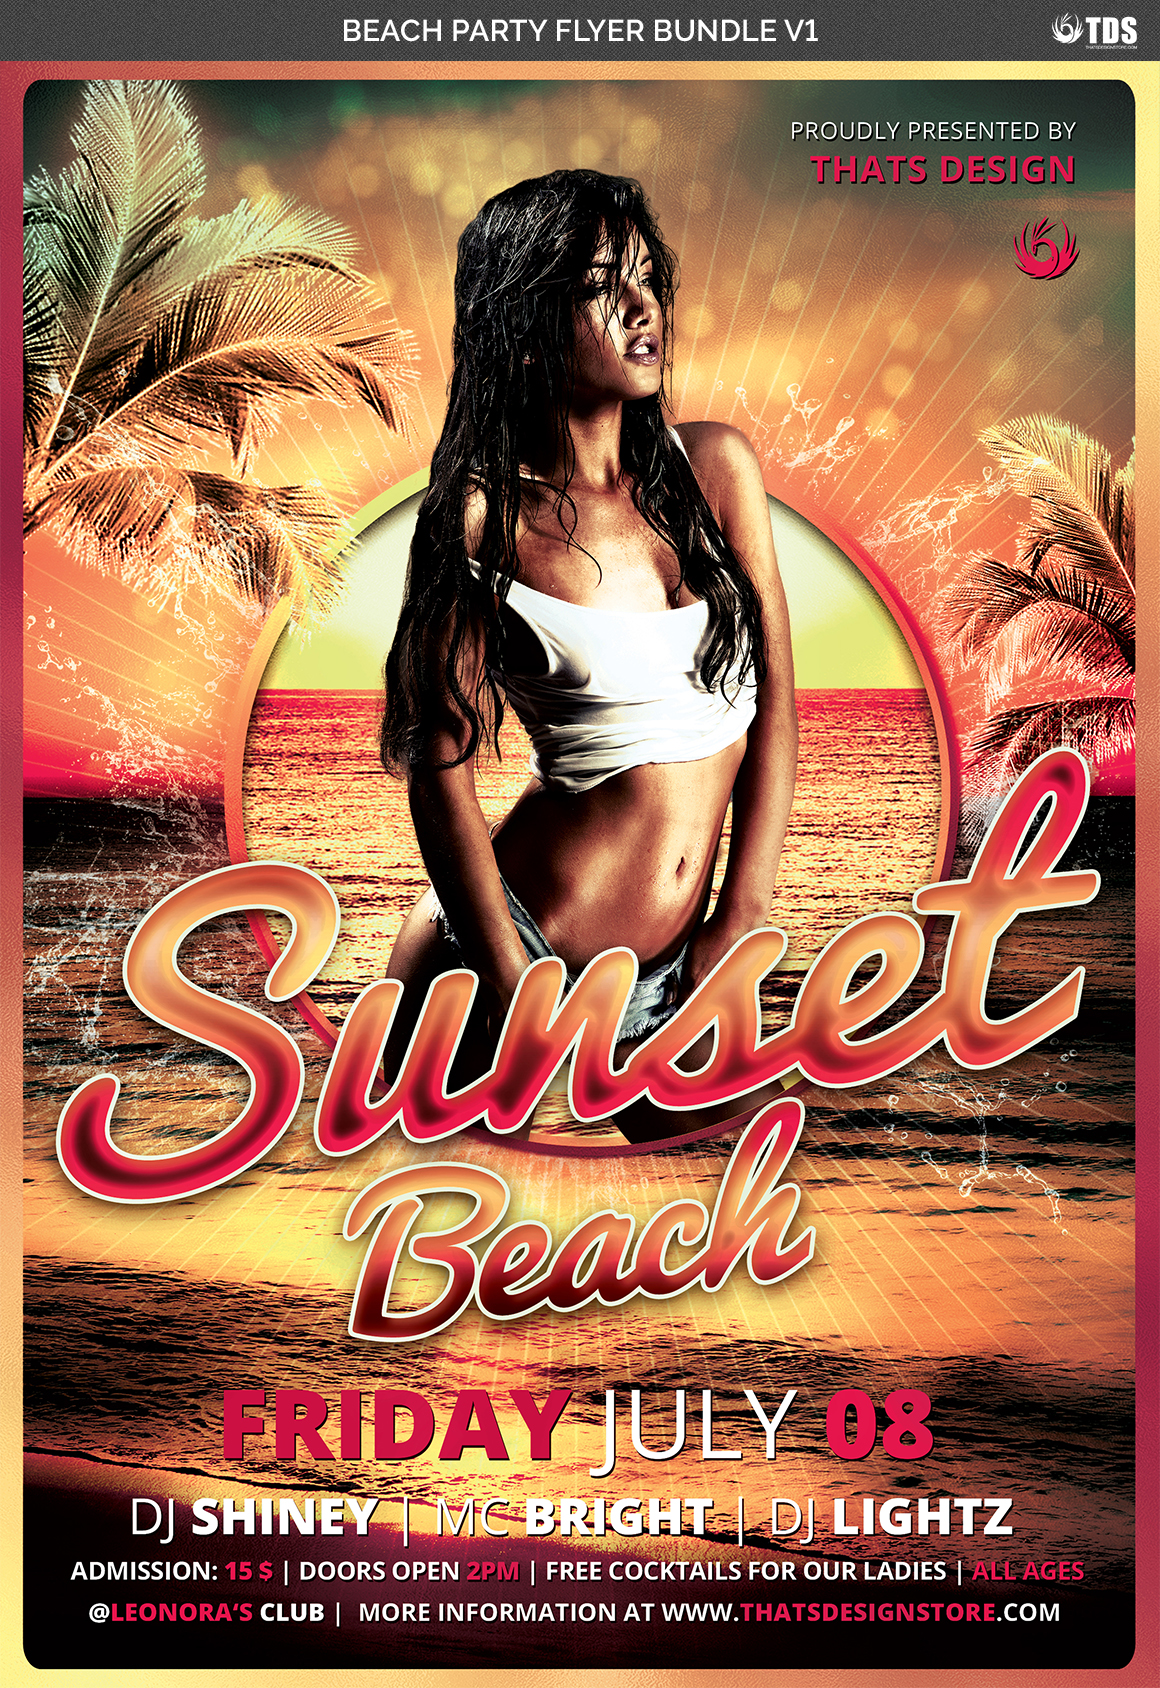 Beach Party Flyer Bundle V1 example image 6